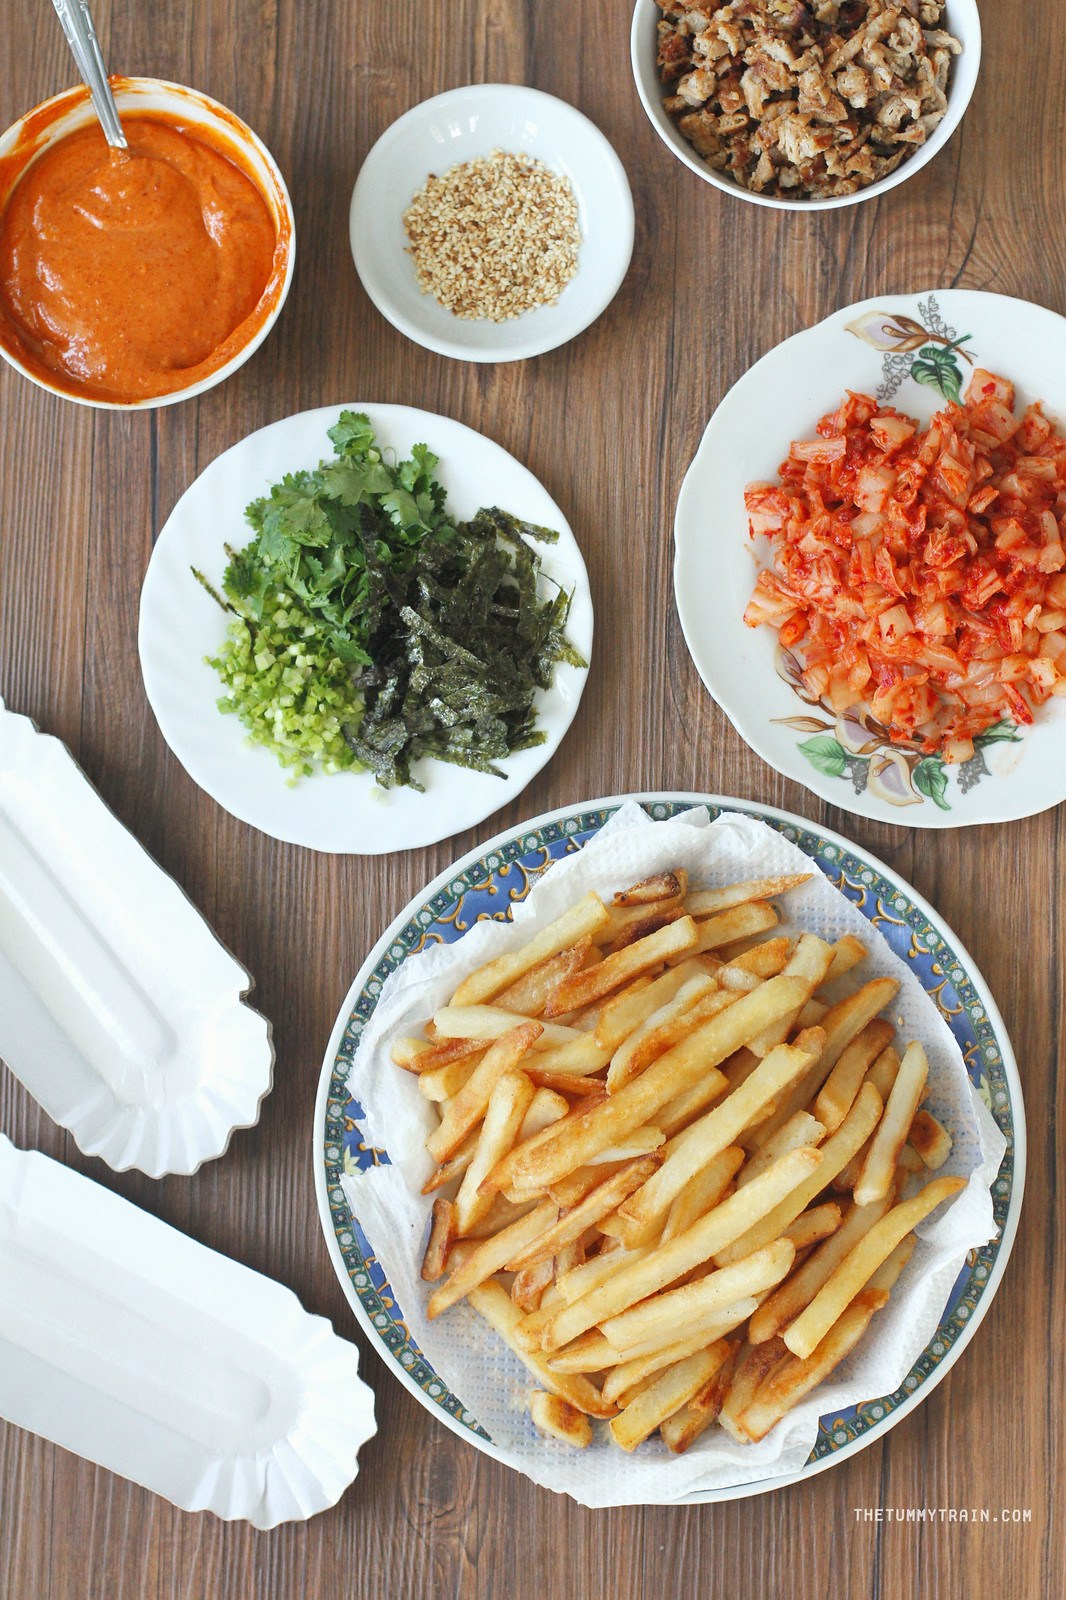 Korean Style Fries Recipe Featuring Us Potatoes